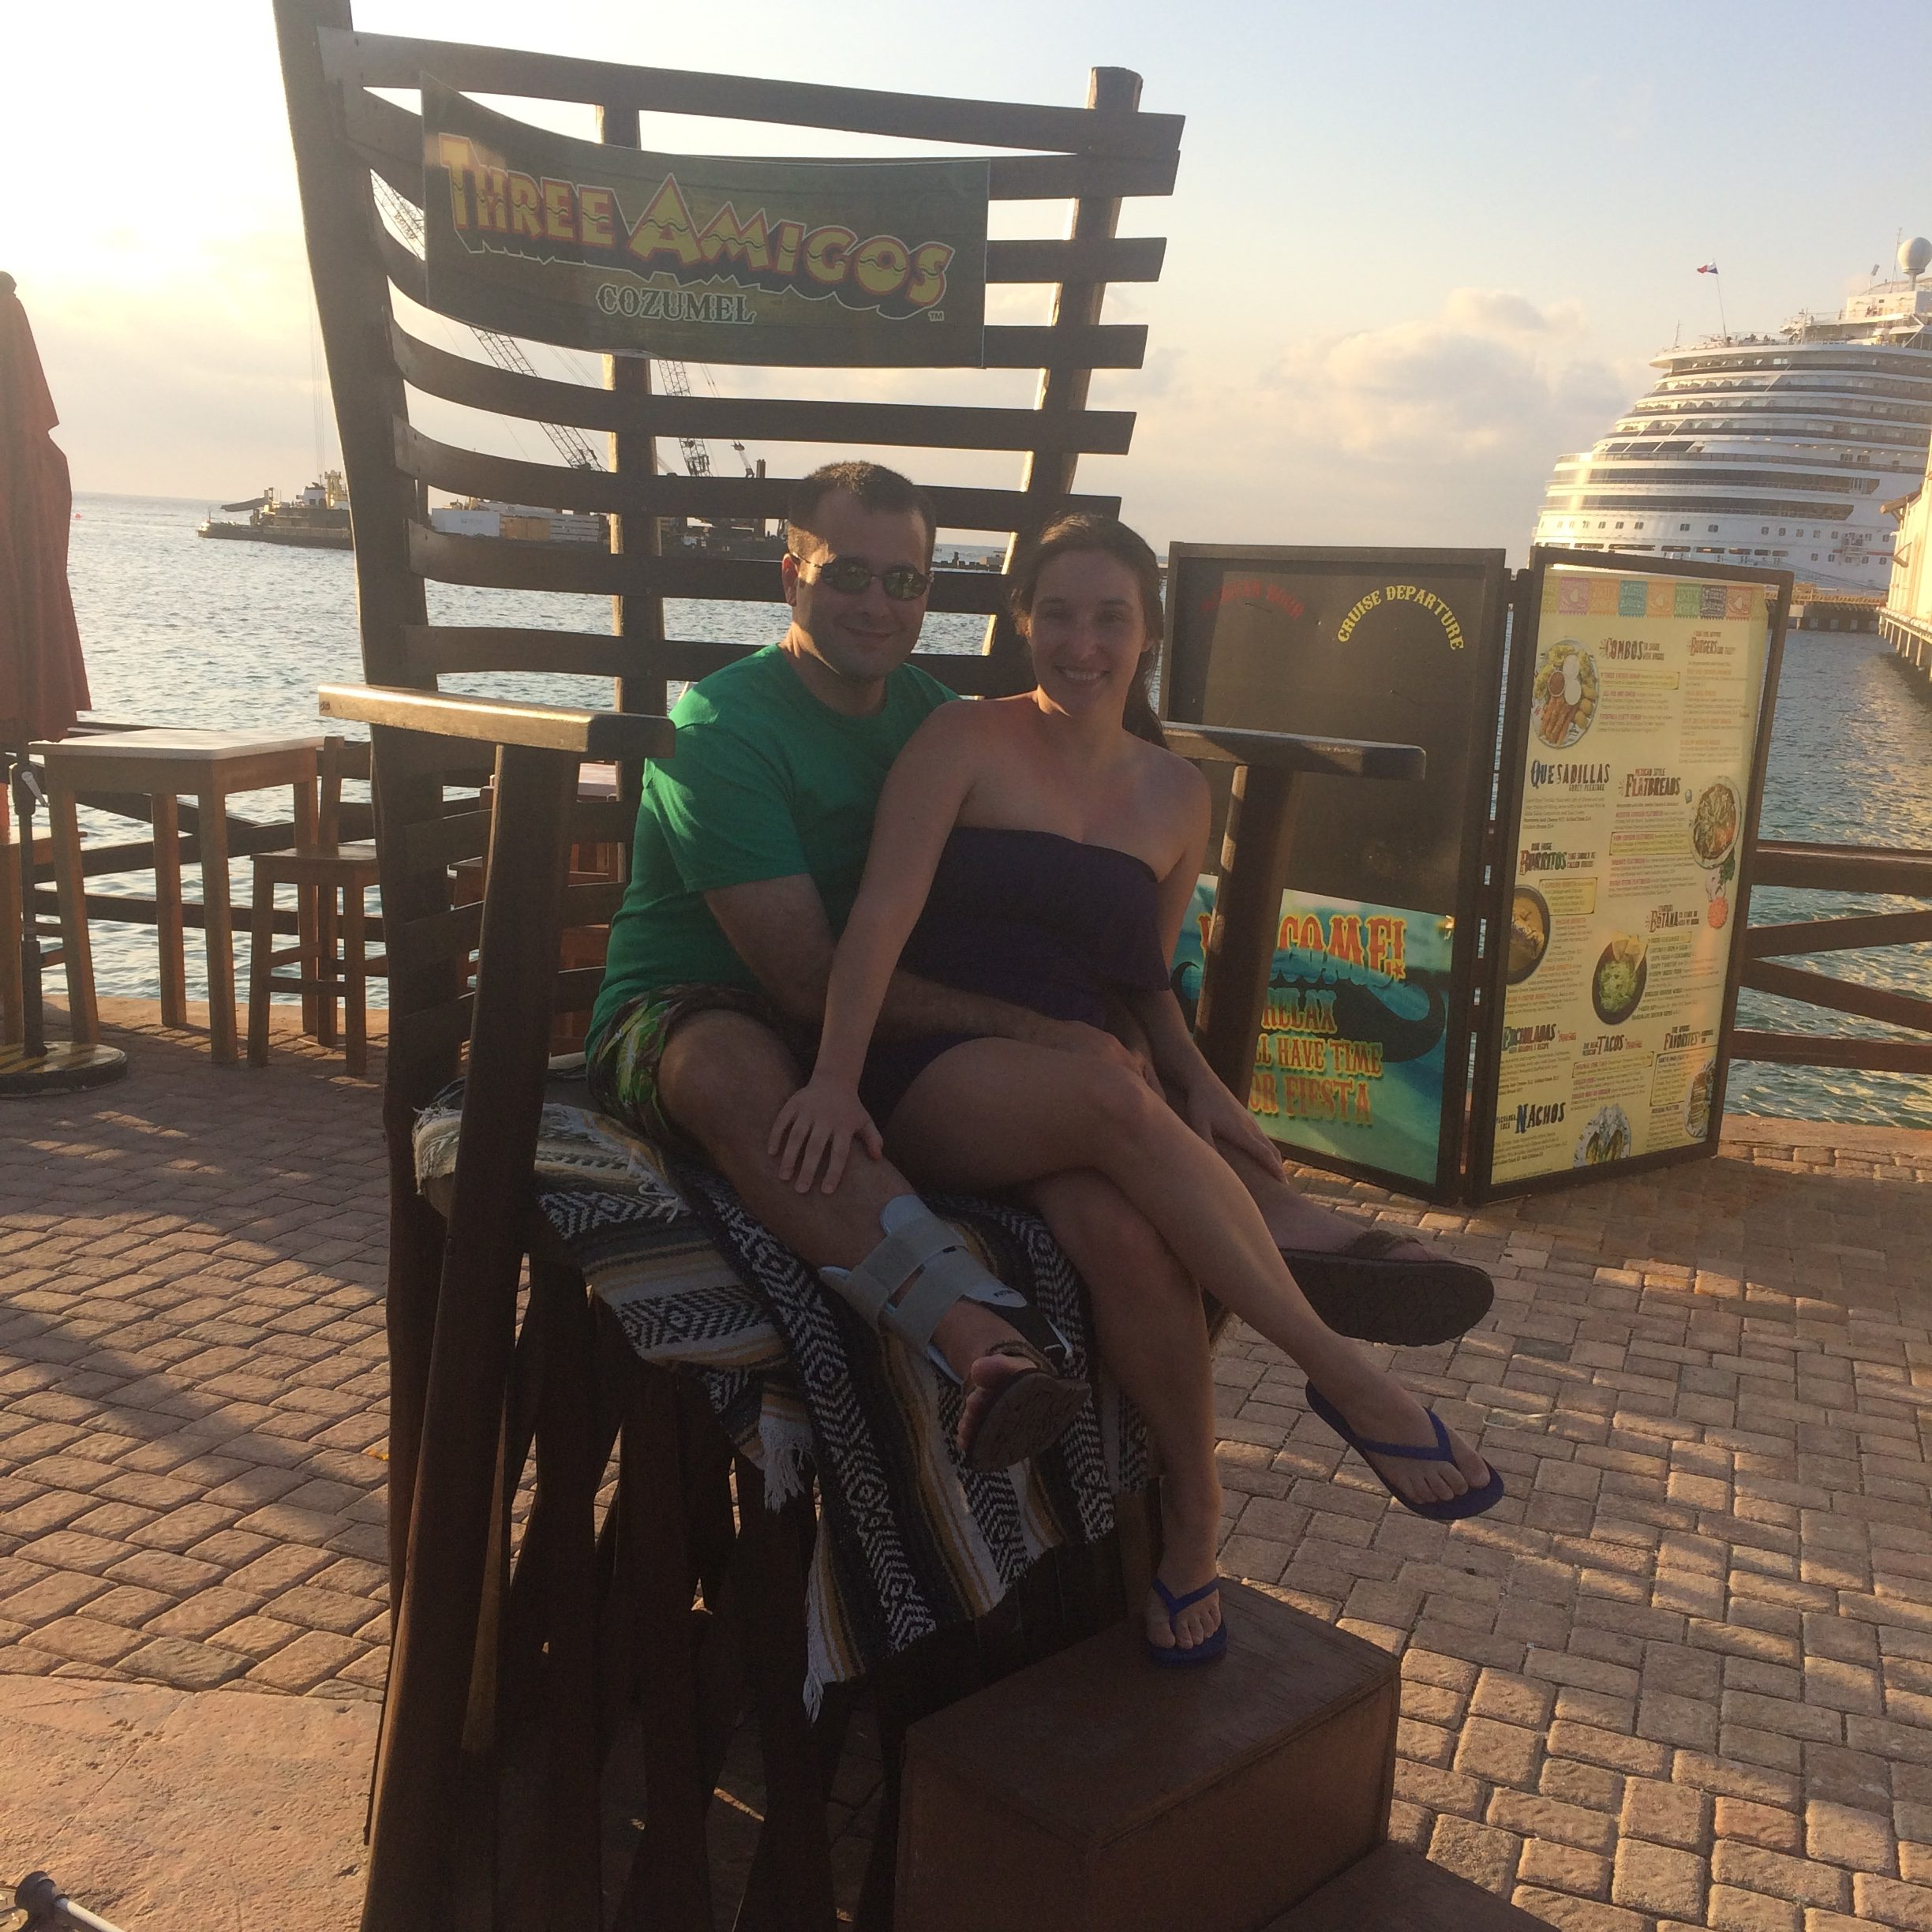 #5 Cozumel. Just posing in the Three Amigos chair.